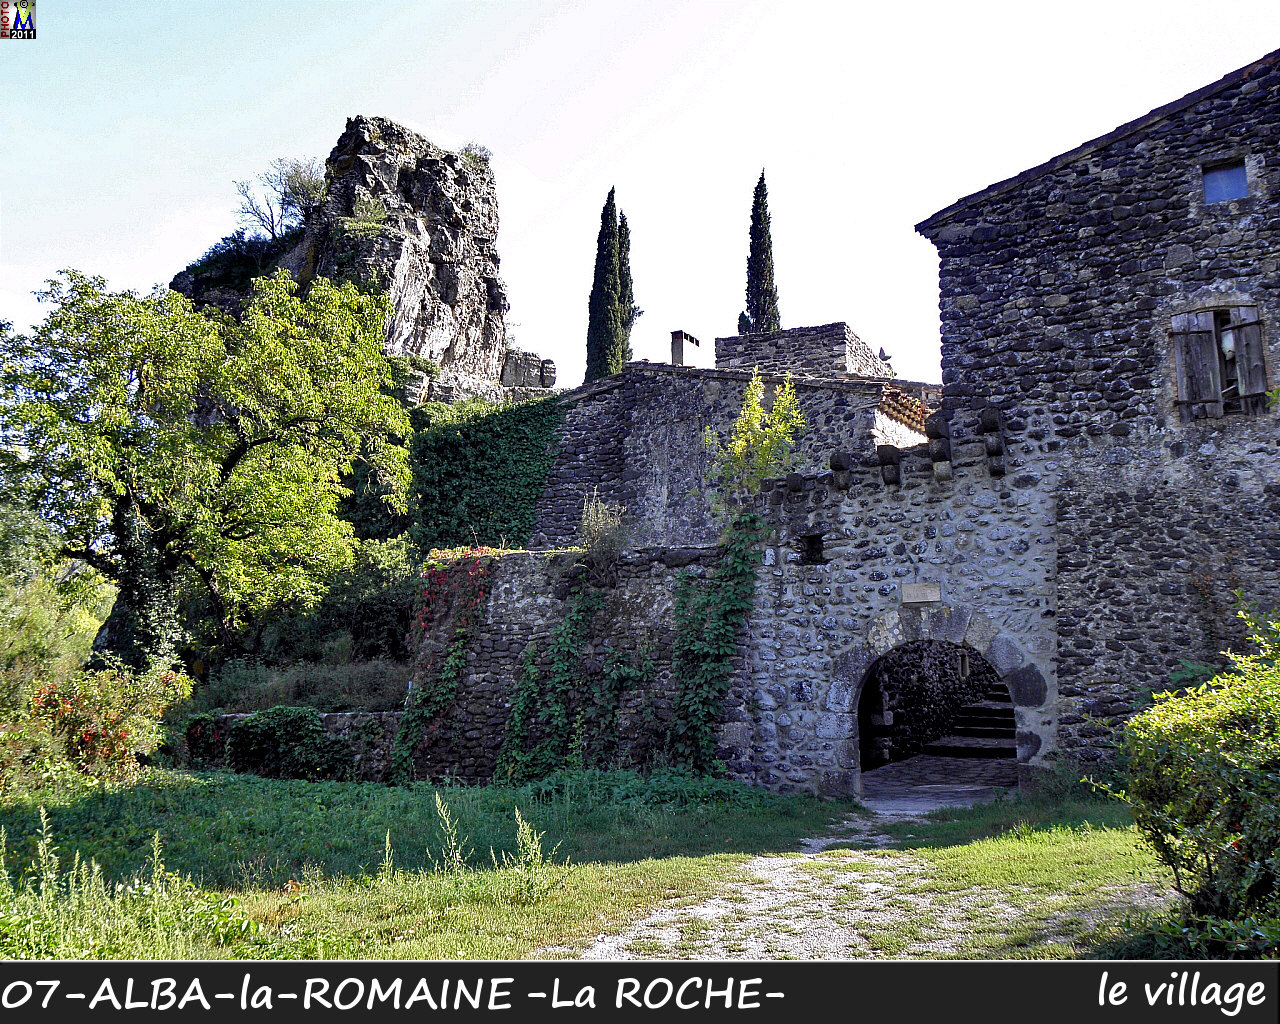 07ALBA-ROMAINEzROCHE_village_120.jpg